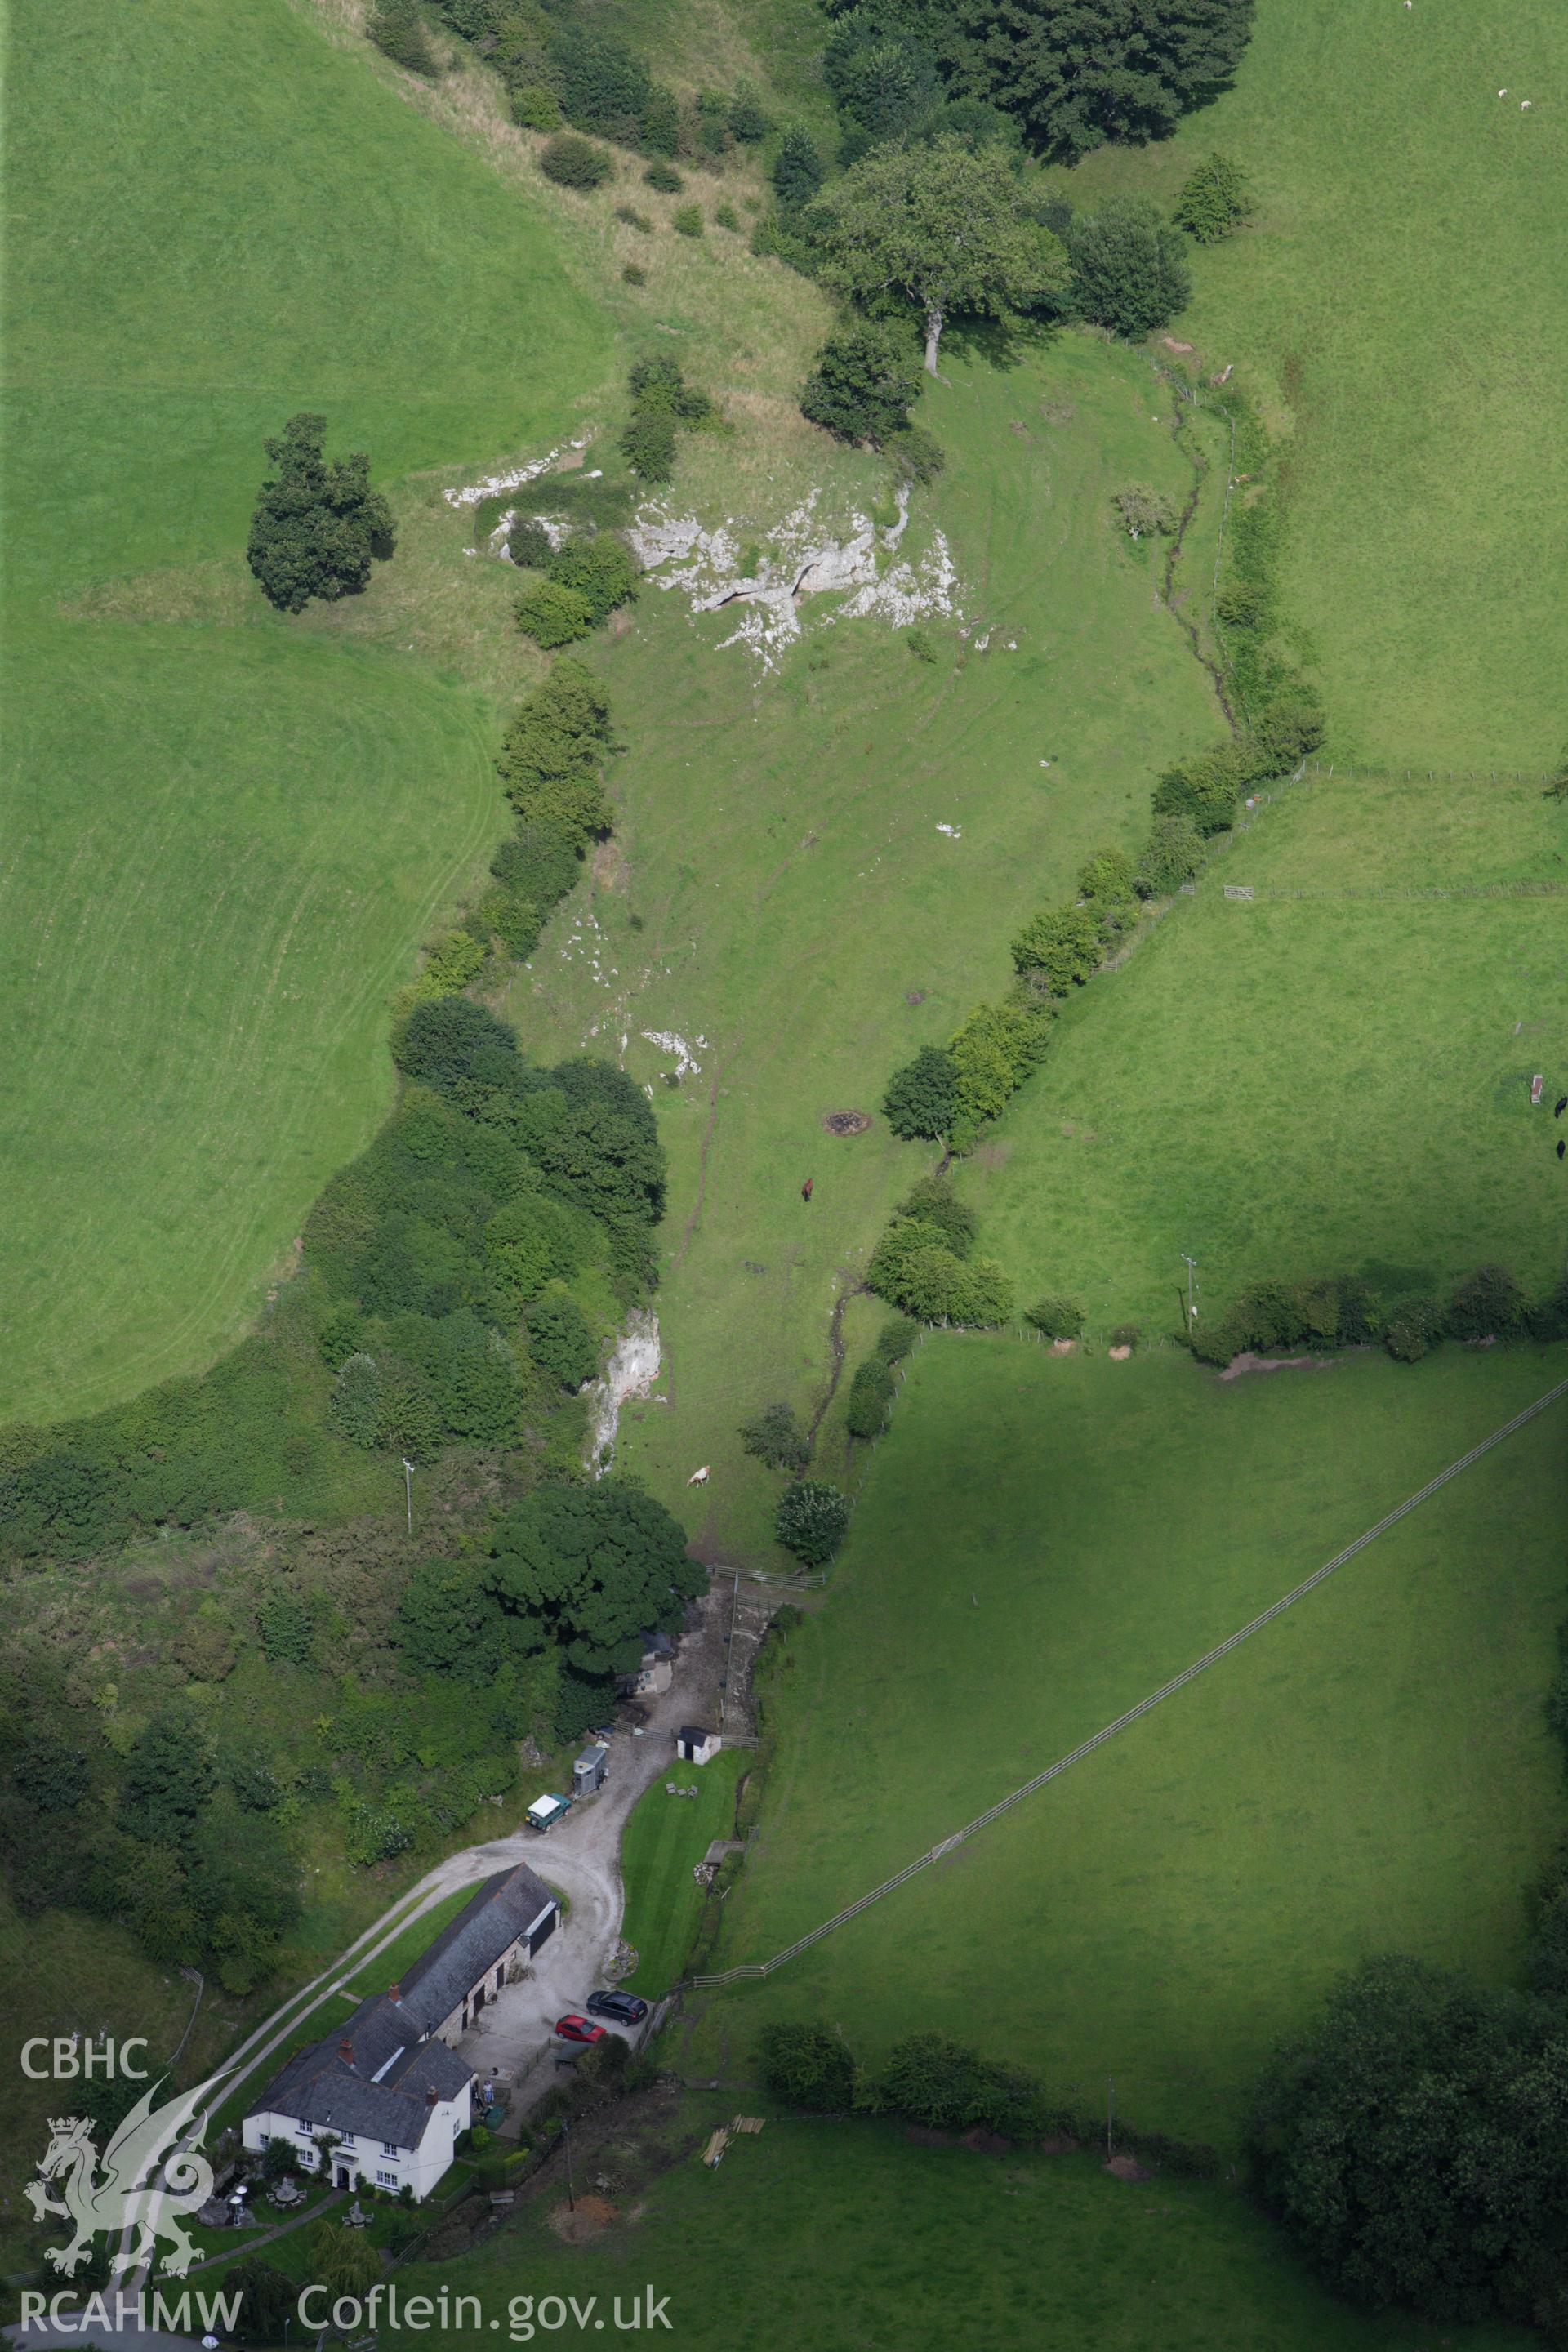 RCAHMW colour oblique aerial photograph of Ffynnon Beuno Cave. Taken on 30 July 2009 by Toby Driver